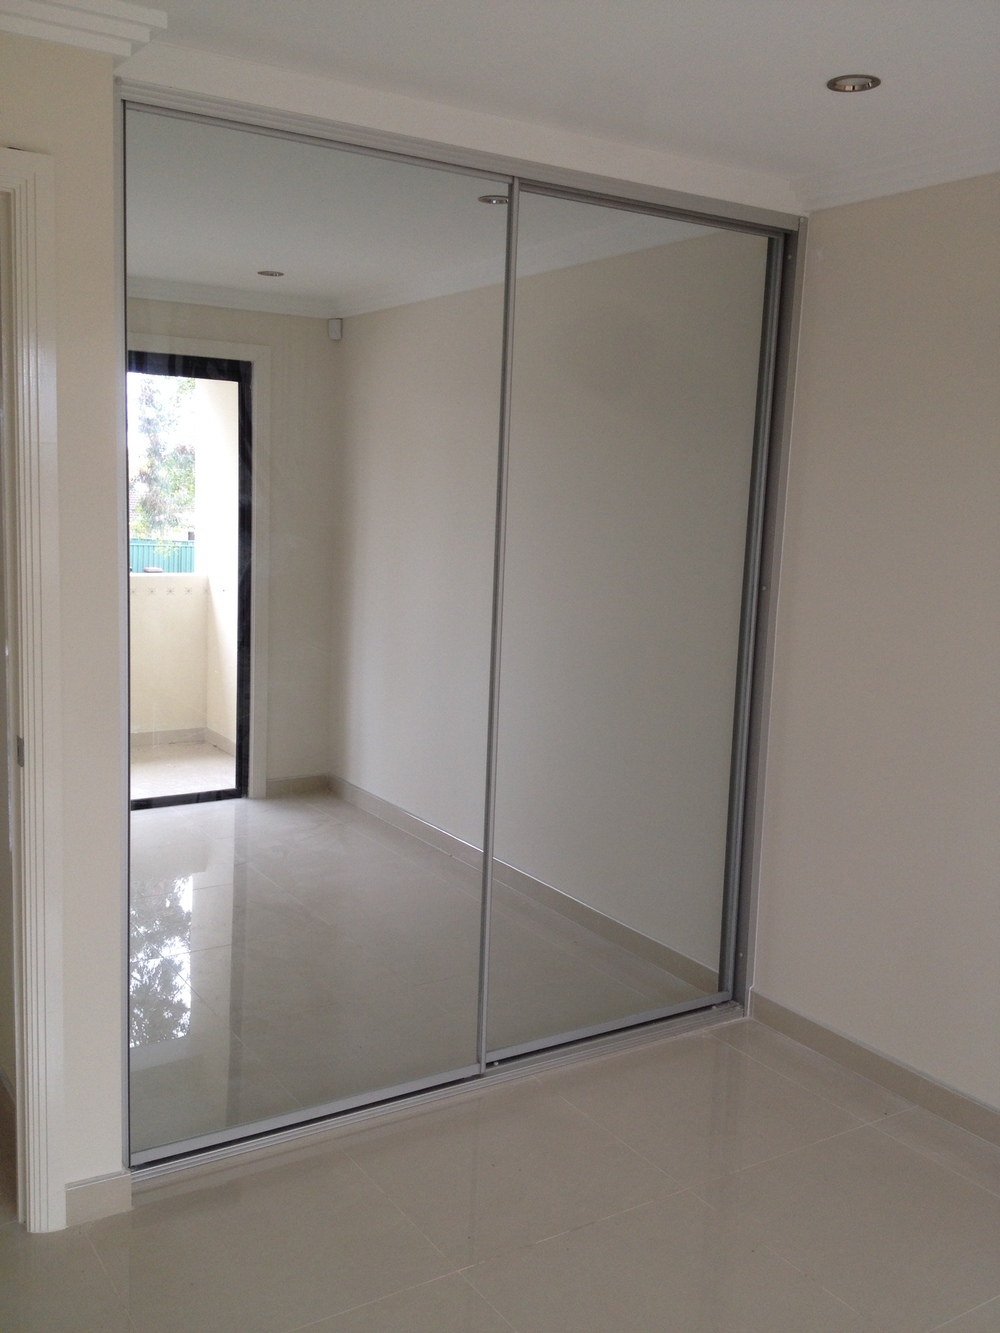 Contemporary sliding wardrobes quality kitchens and for Sliding mirror doors